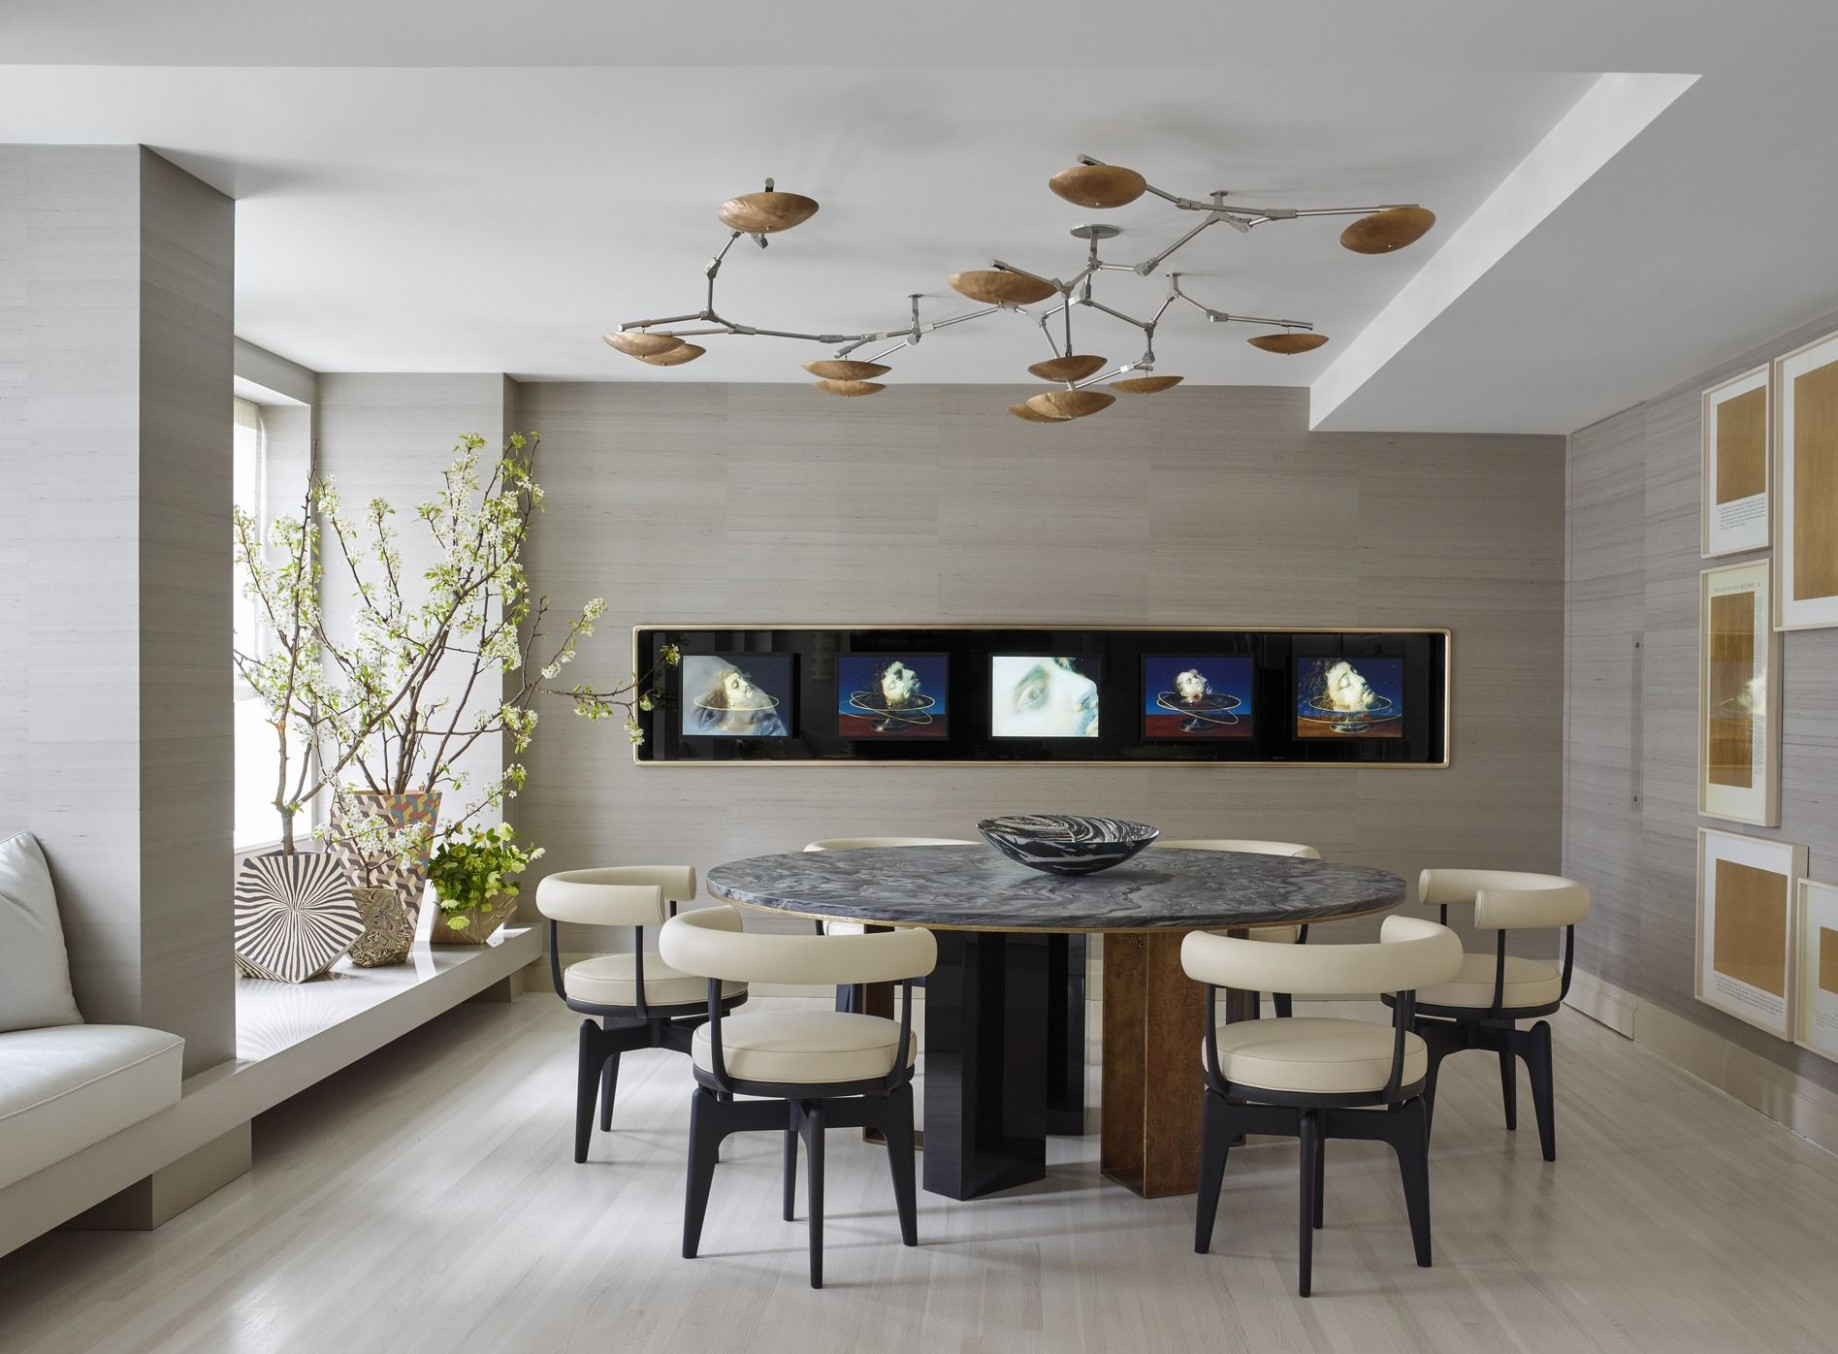 8 Modern Dining Room Decorating Ideas - Contemporary Dining Room  - Dining Room Renovation Ideas